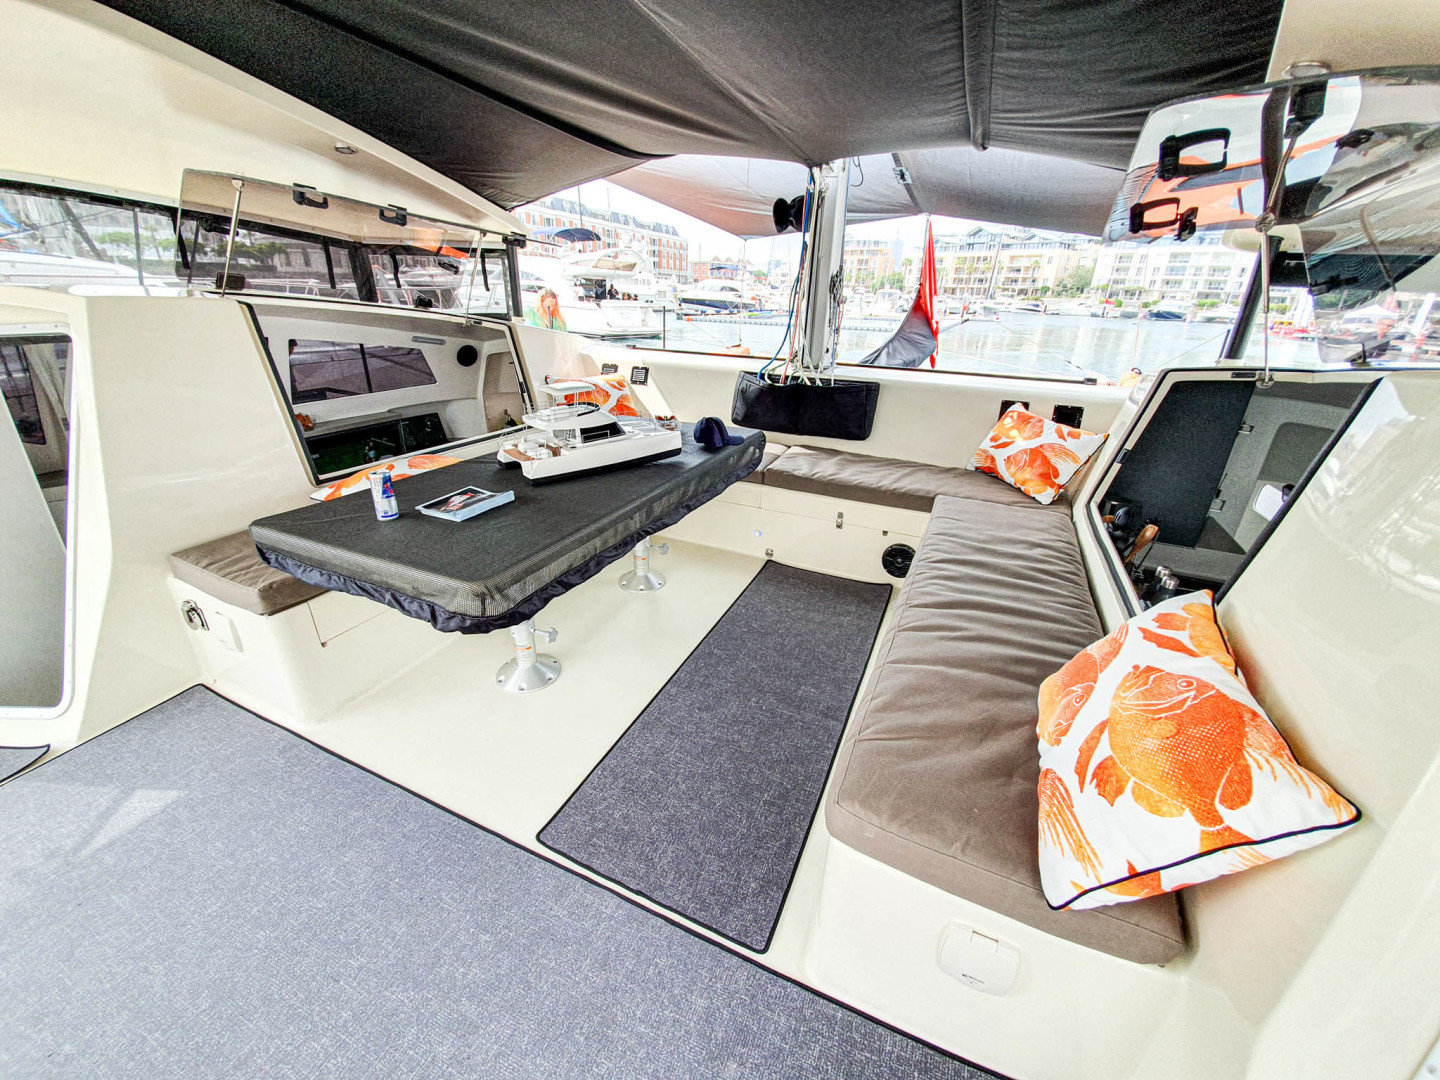 2019 Scape Yachts 40 Sport 12